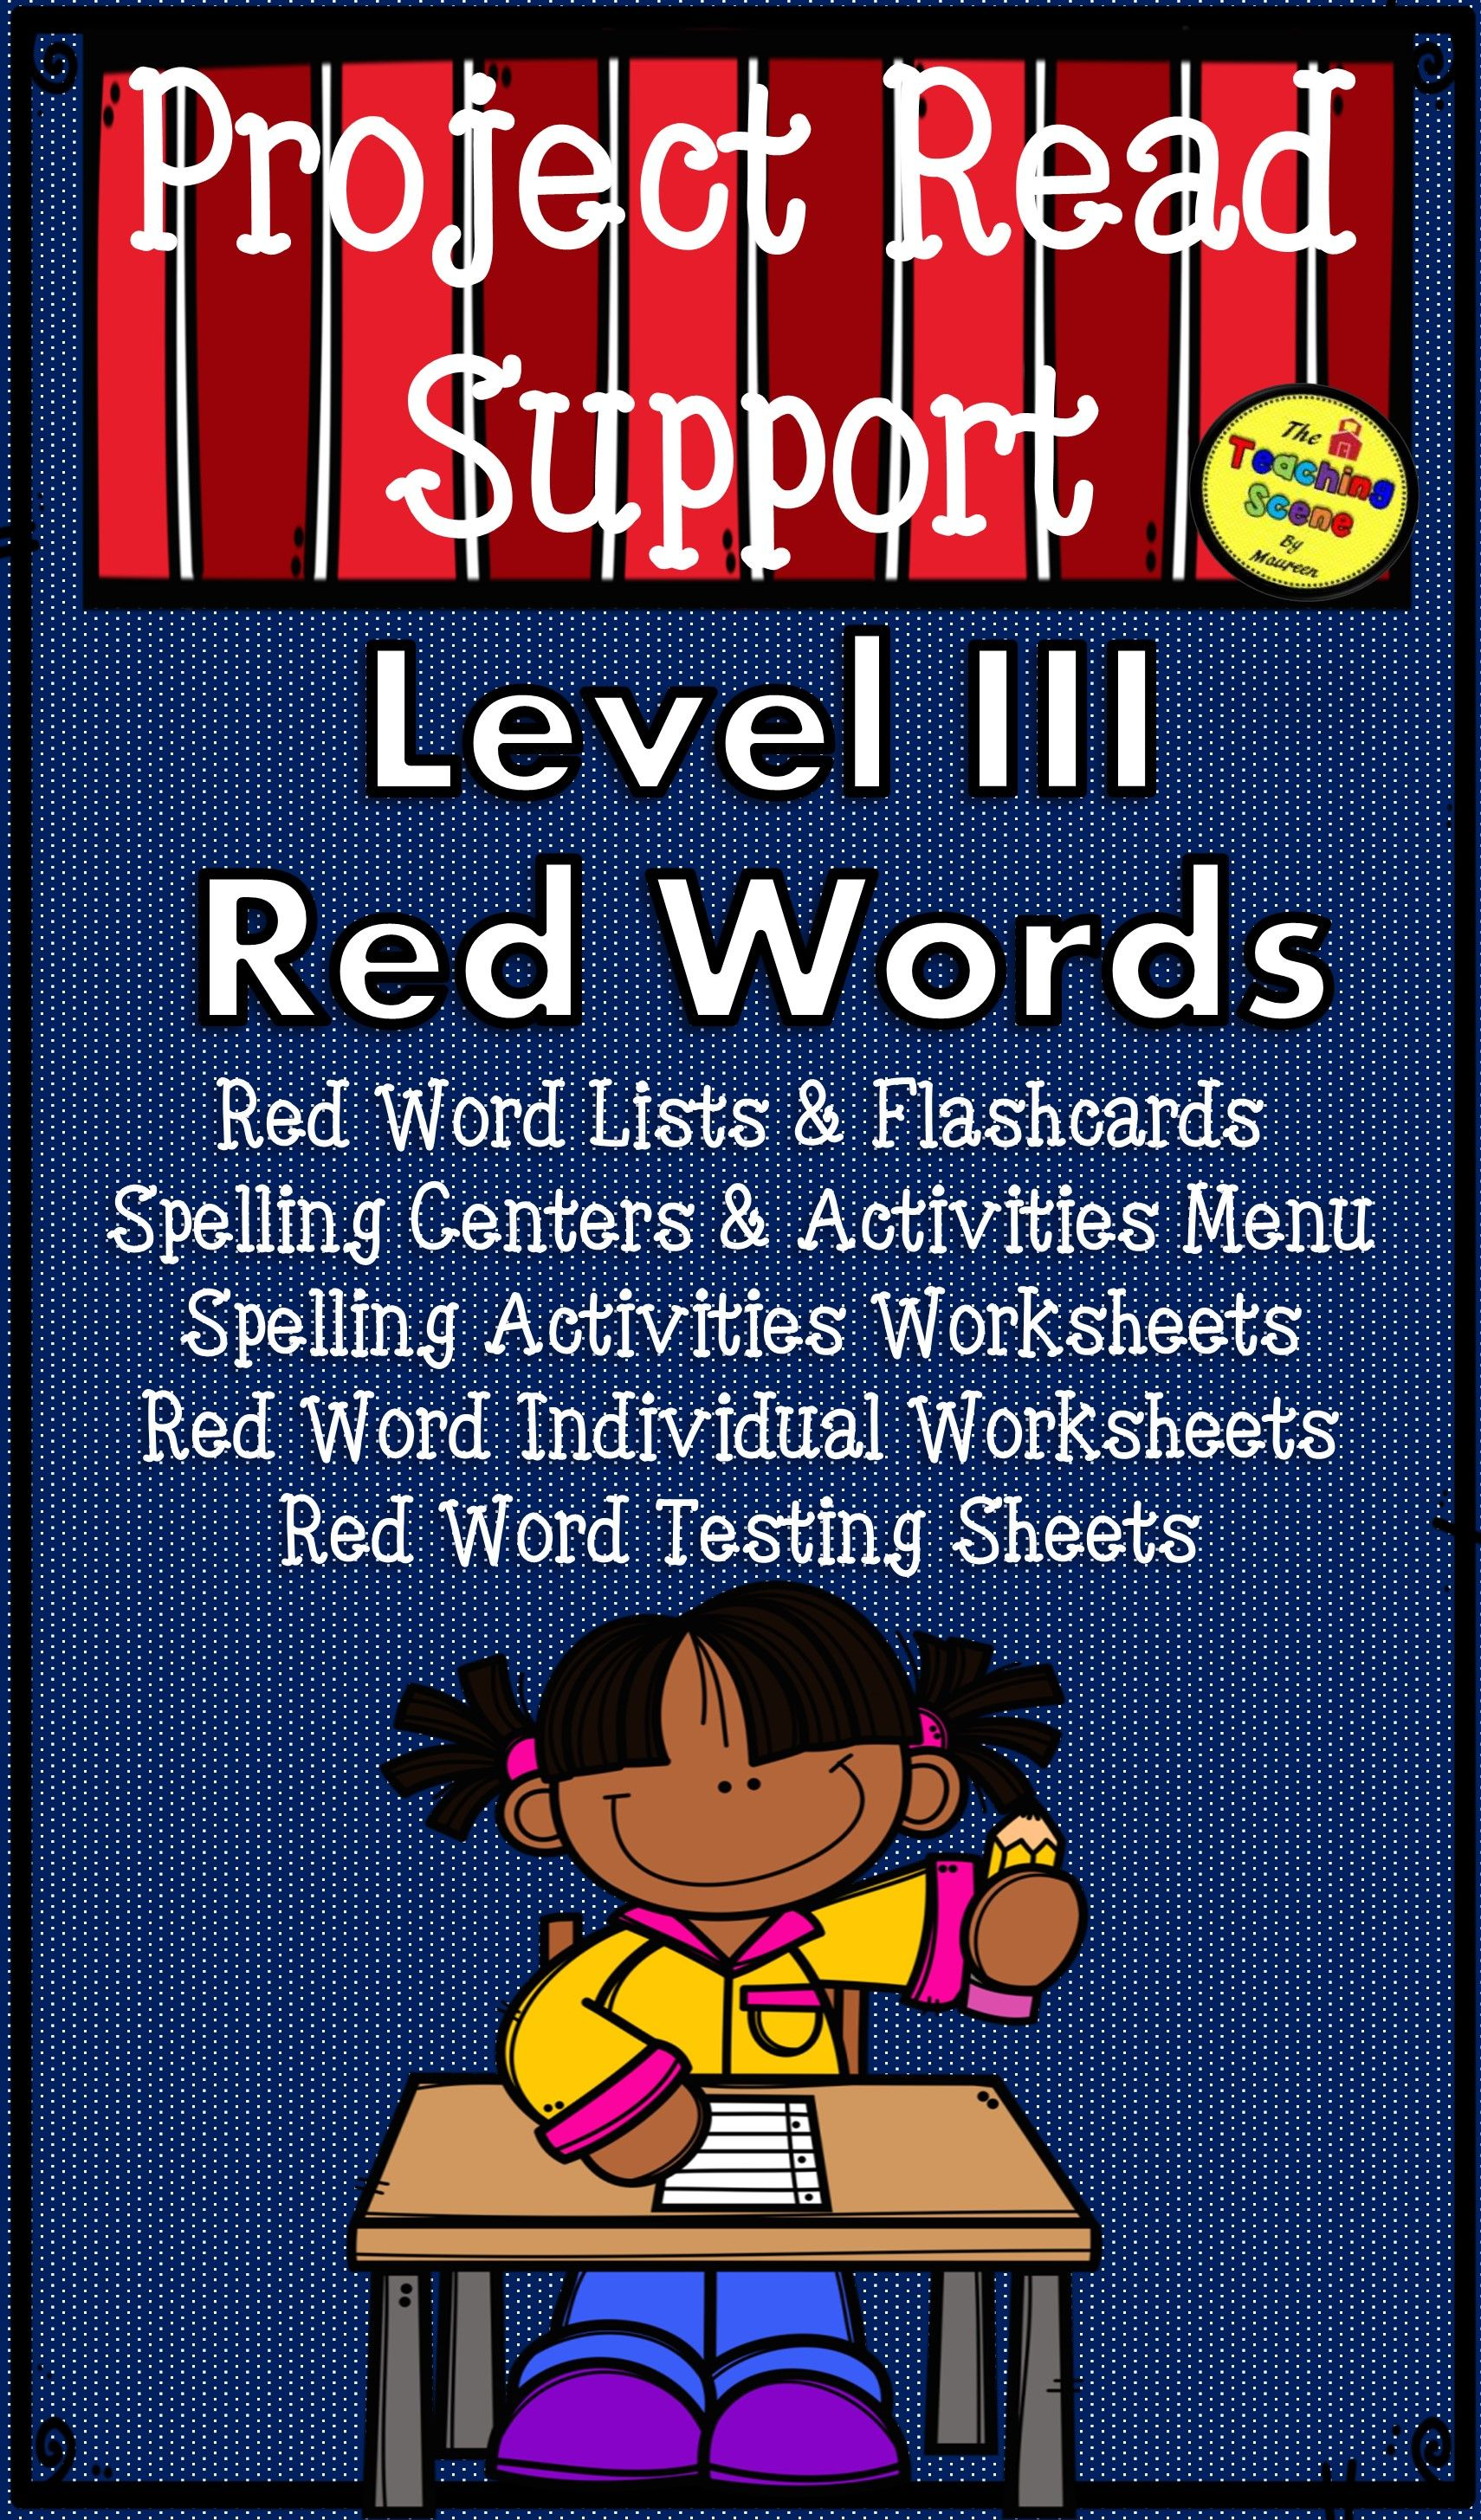 Project Read Support Red Word Level Iii Centers